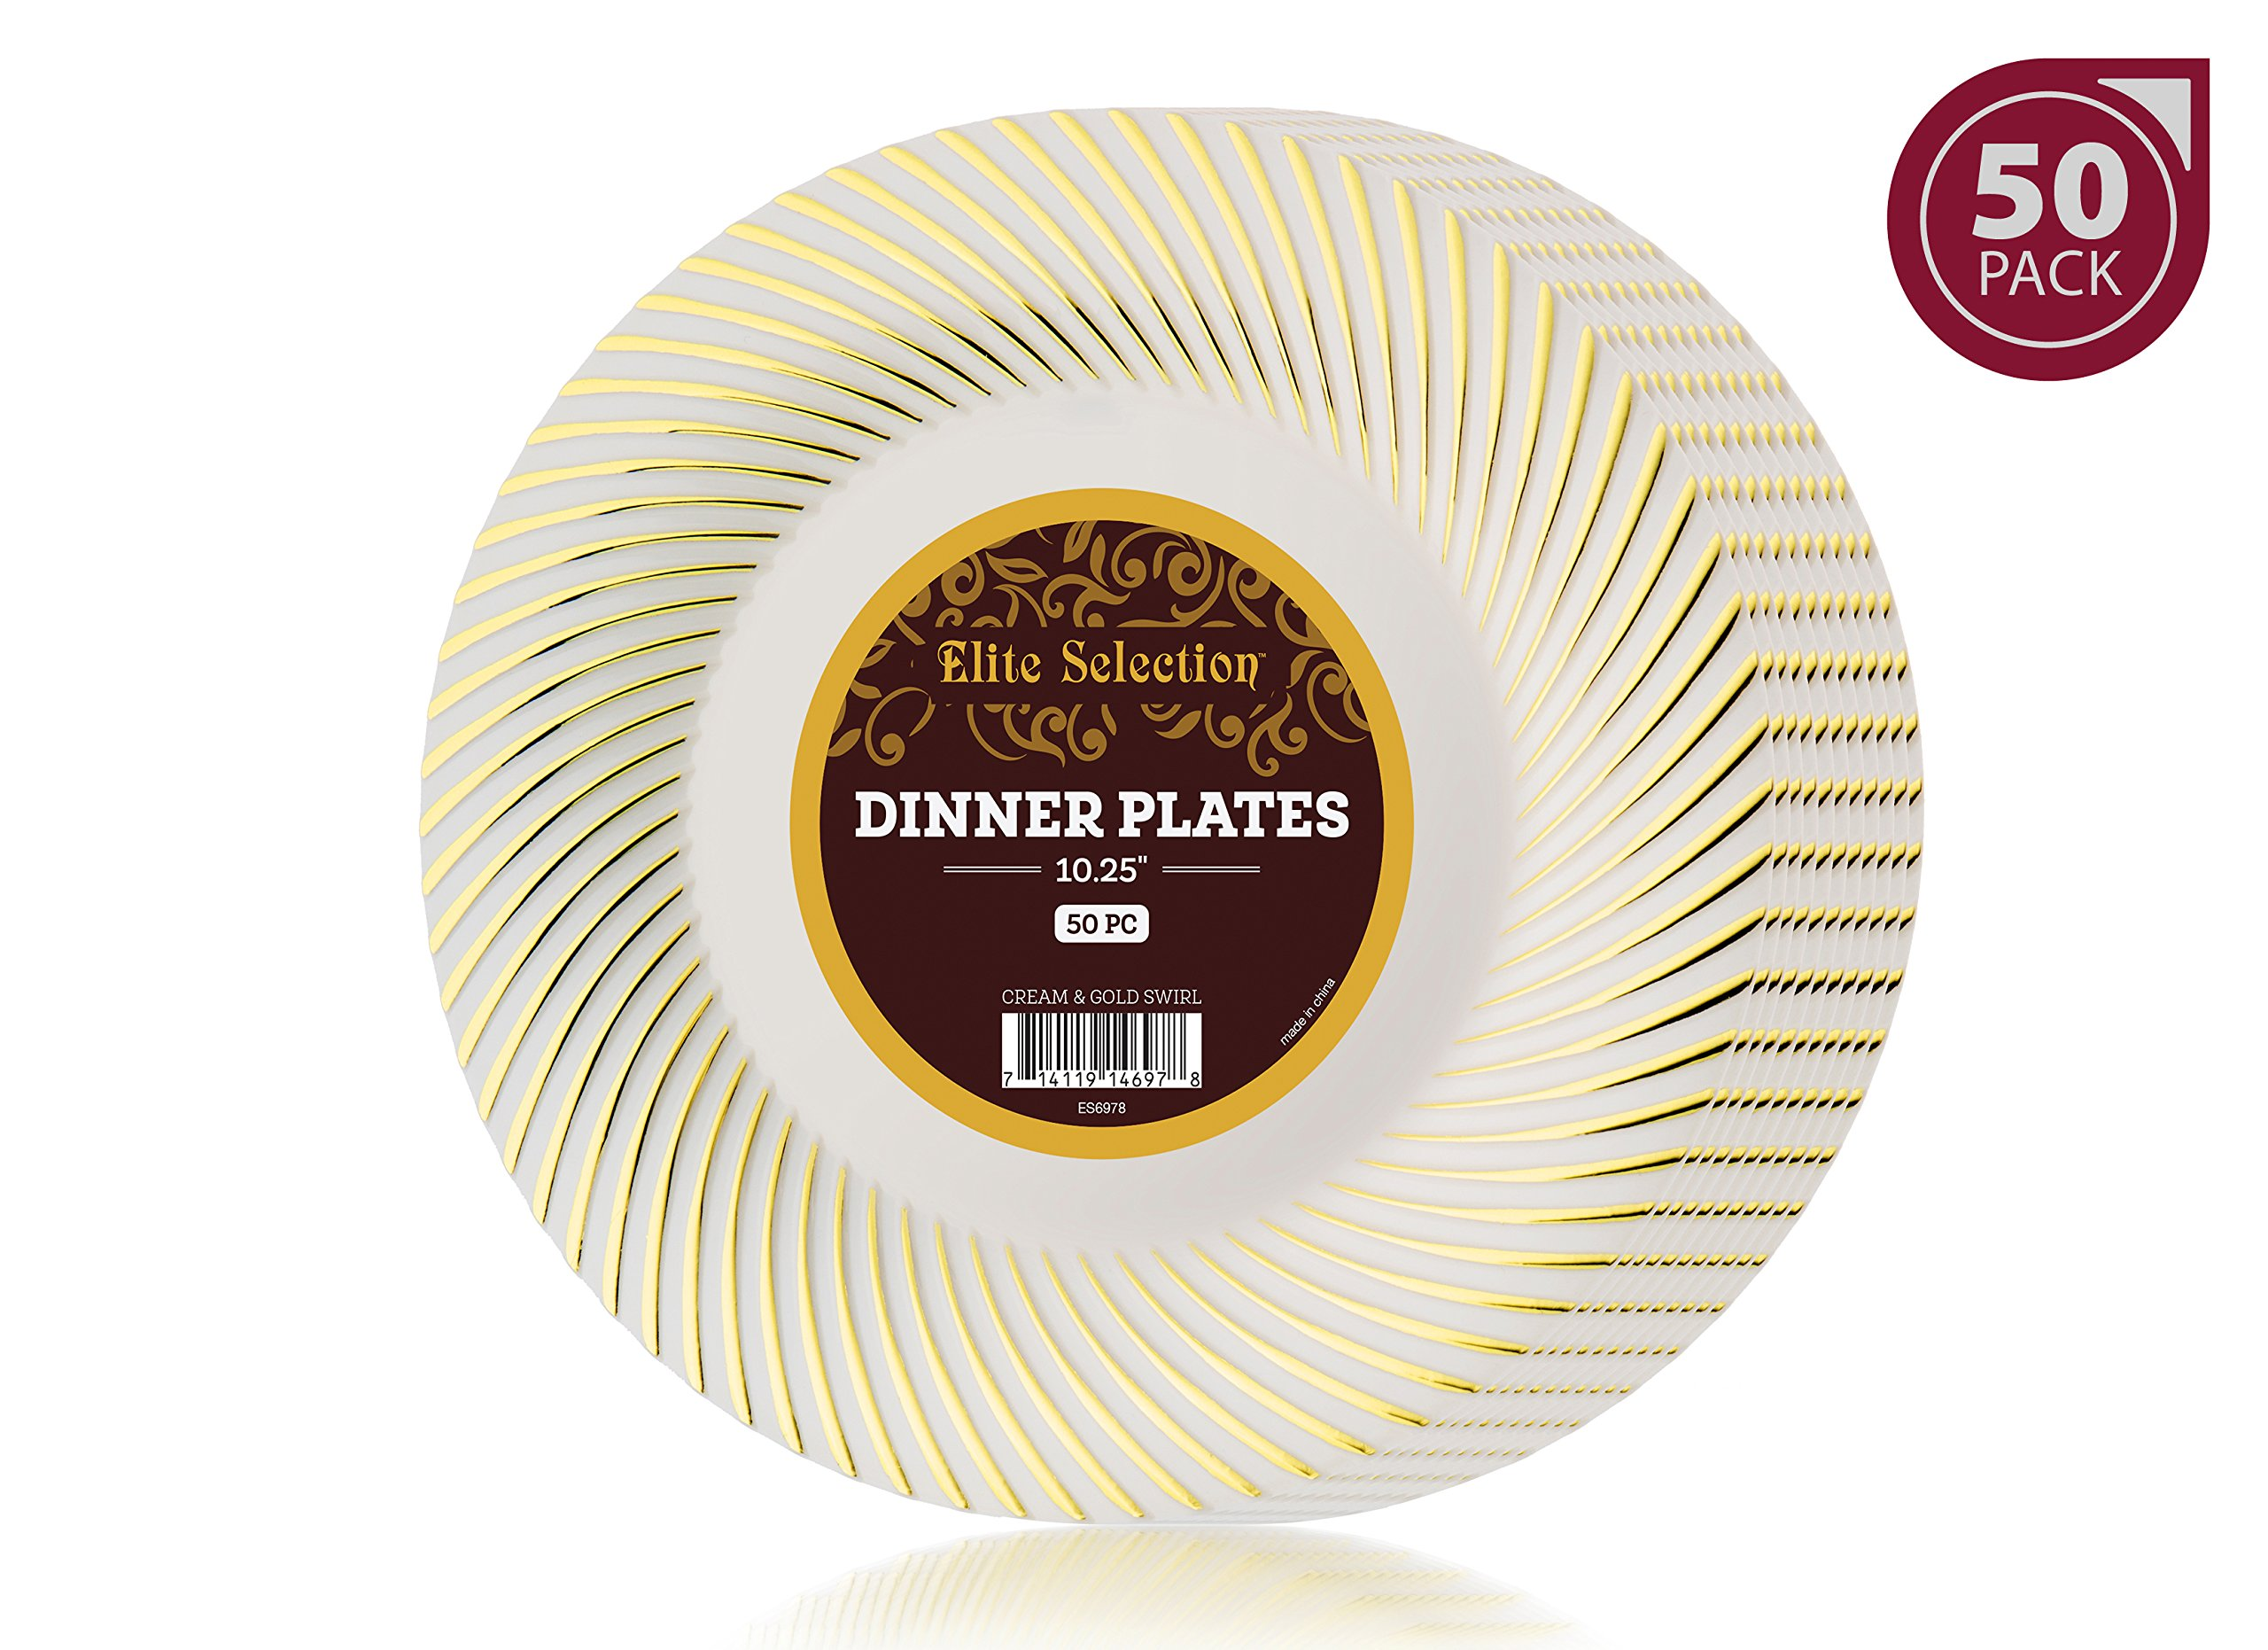 """Bulk Pack of 50 Disposable Plastic Party and Dinner Plates - Ivory Cream Color with Gold Swirl Trimmings Looks Like Real China Dishes - 10.25"""" Inches – By Elite Selection by Elite Selections"""